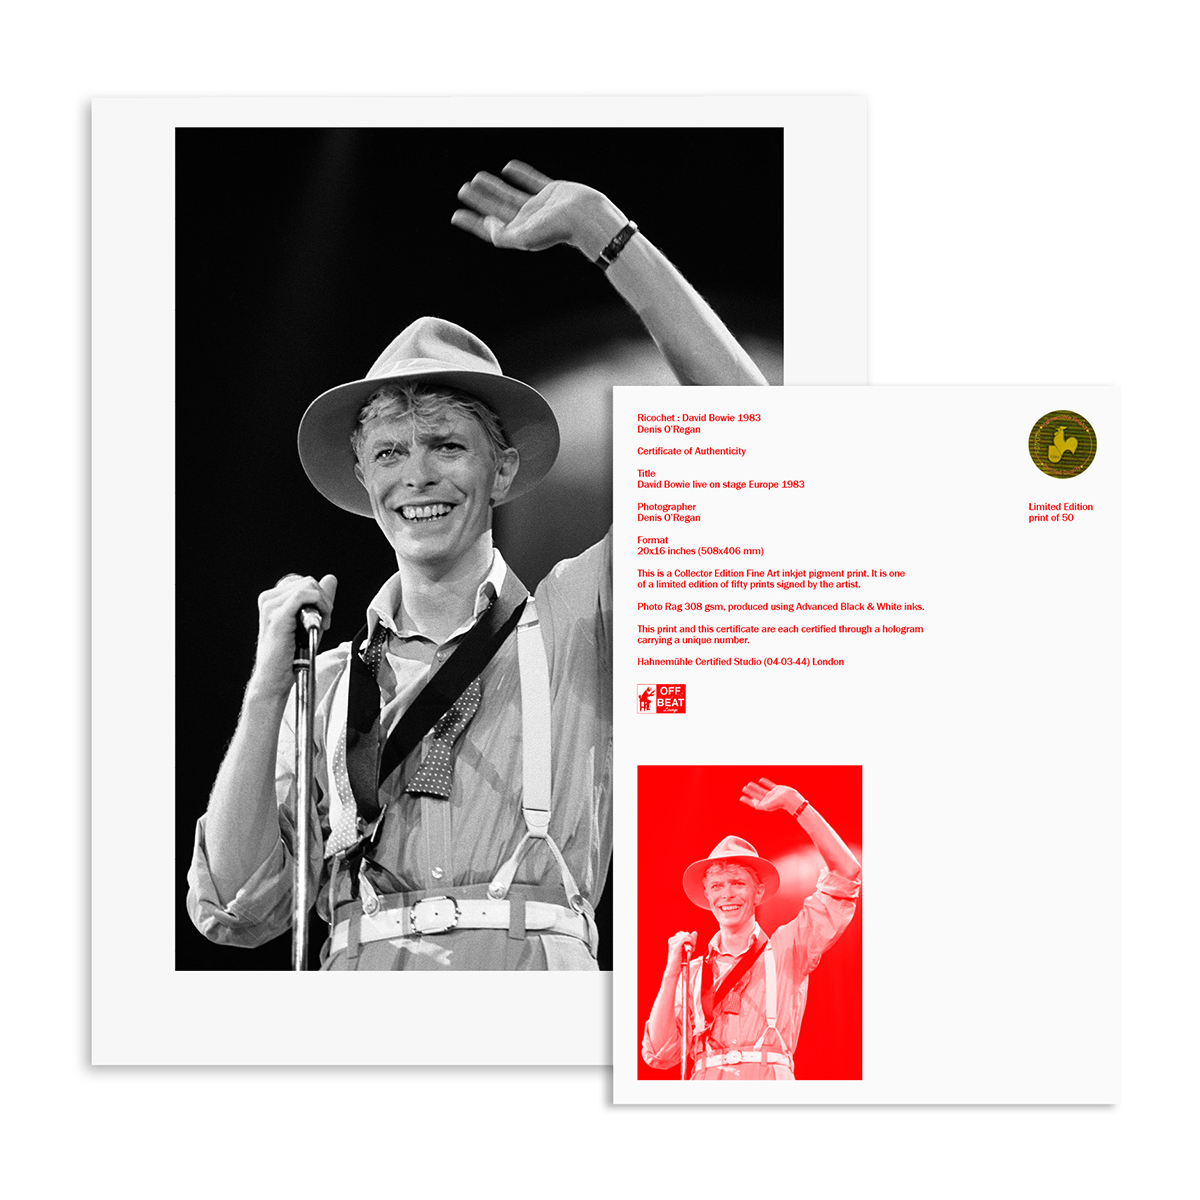 'RICOCHET : DAVID BOWIE 1983' SET OF THREE LIMITED EDITION FINE ART BLACK & WHITE PRINTS (LIMITED RELEASE)